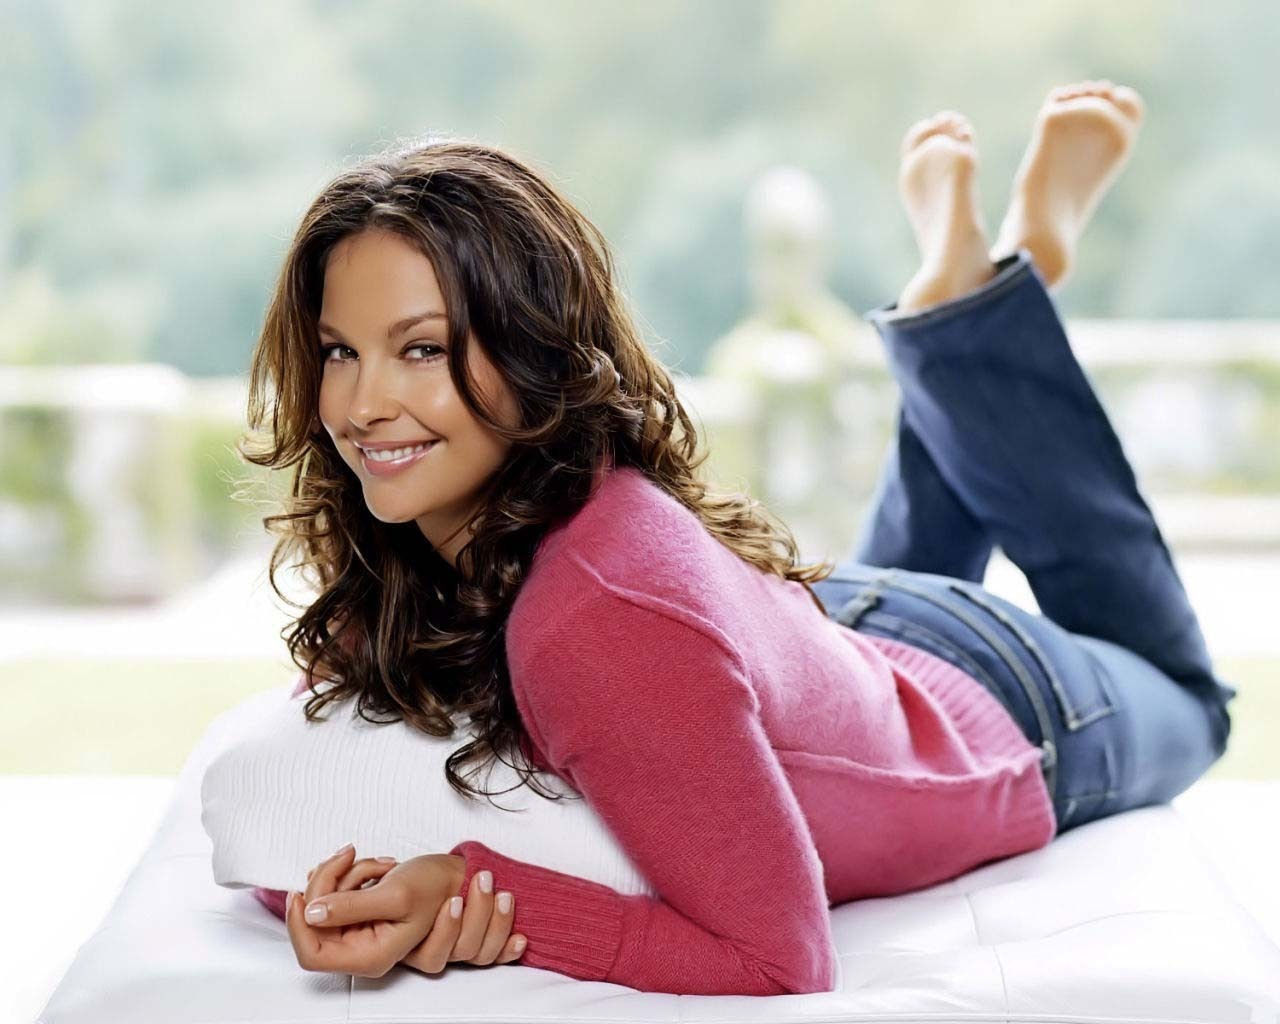 ASHLEY JUDD - ASHLEY JUDD Photo (21001526) - Fanpop